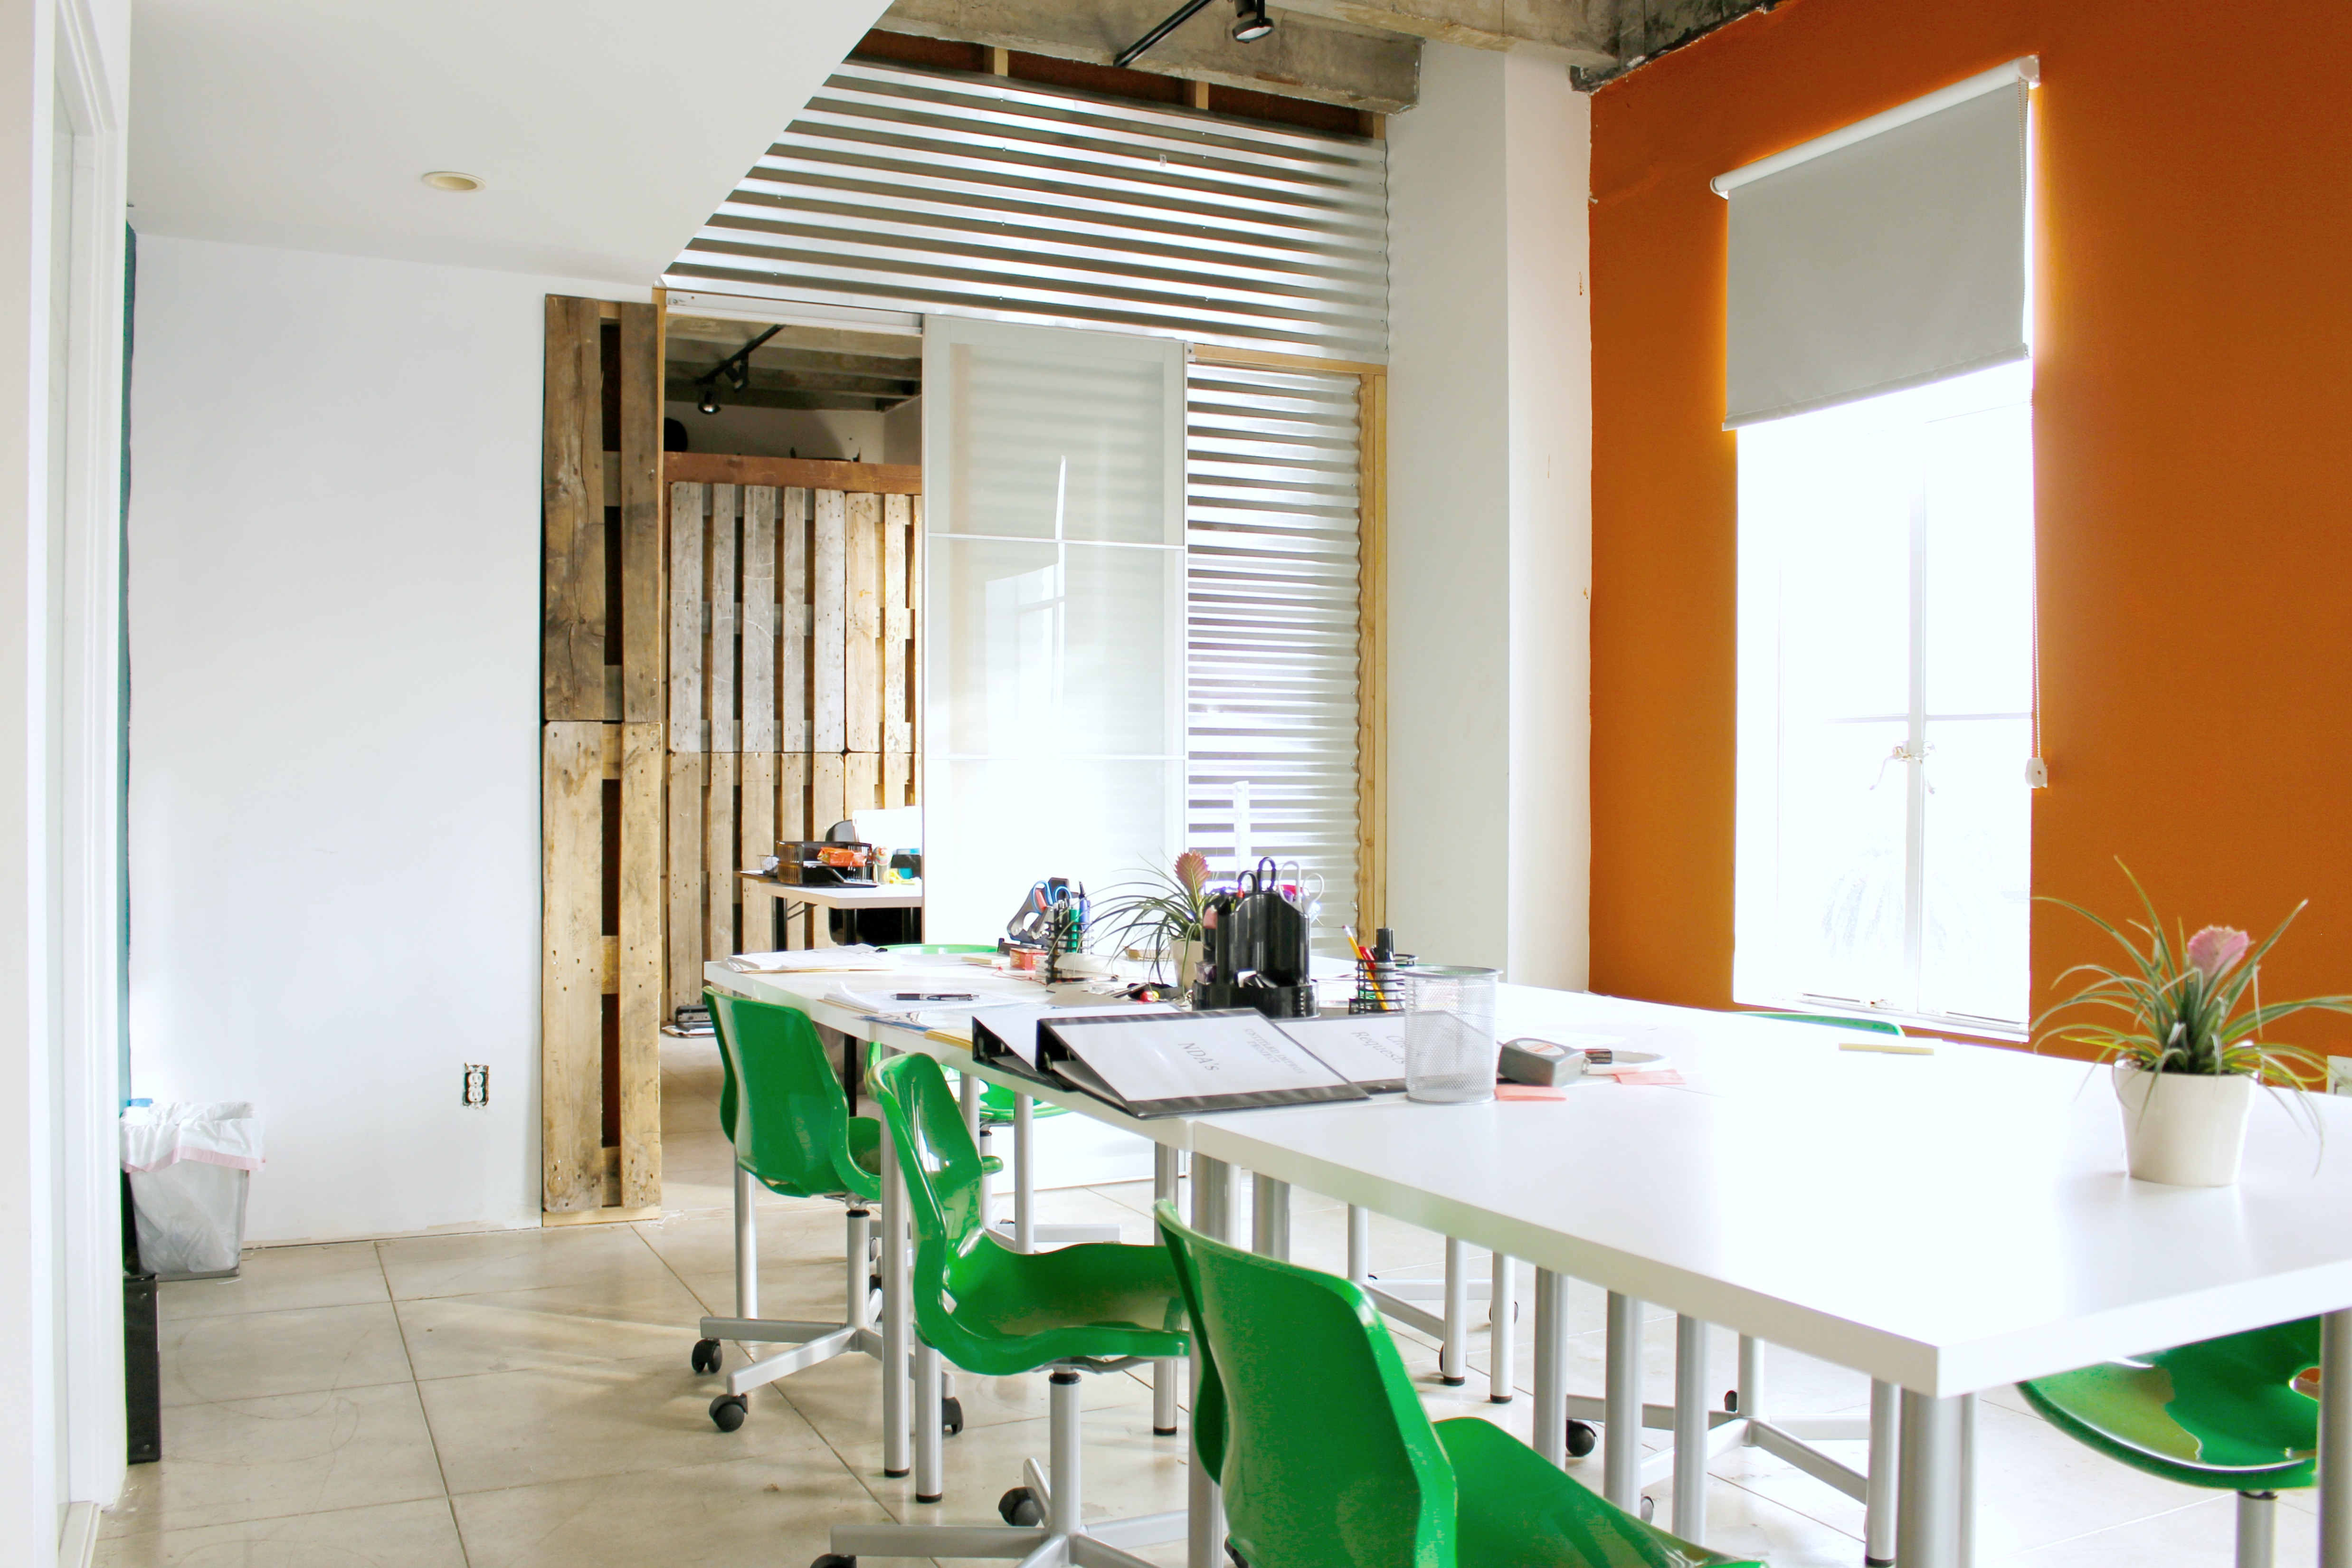 SANTA MONICA OFFICE - MARILYNN TAYLOR DESIGNS